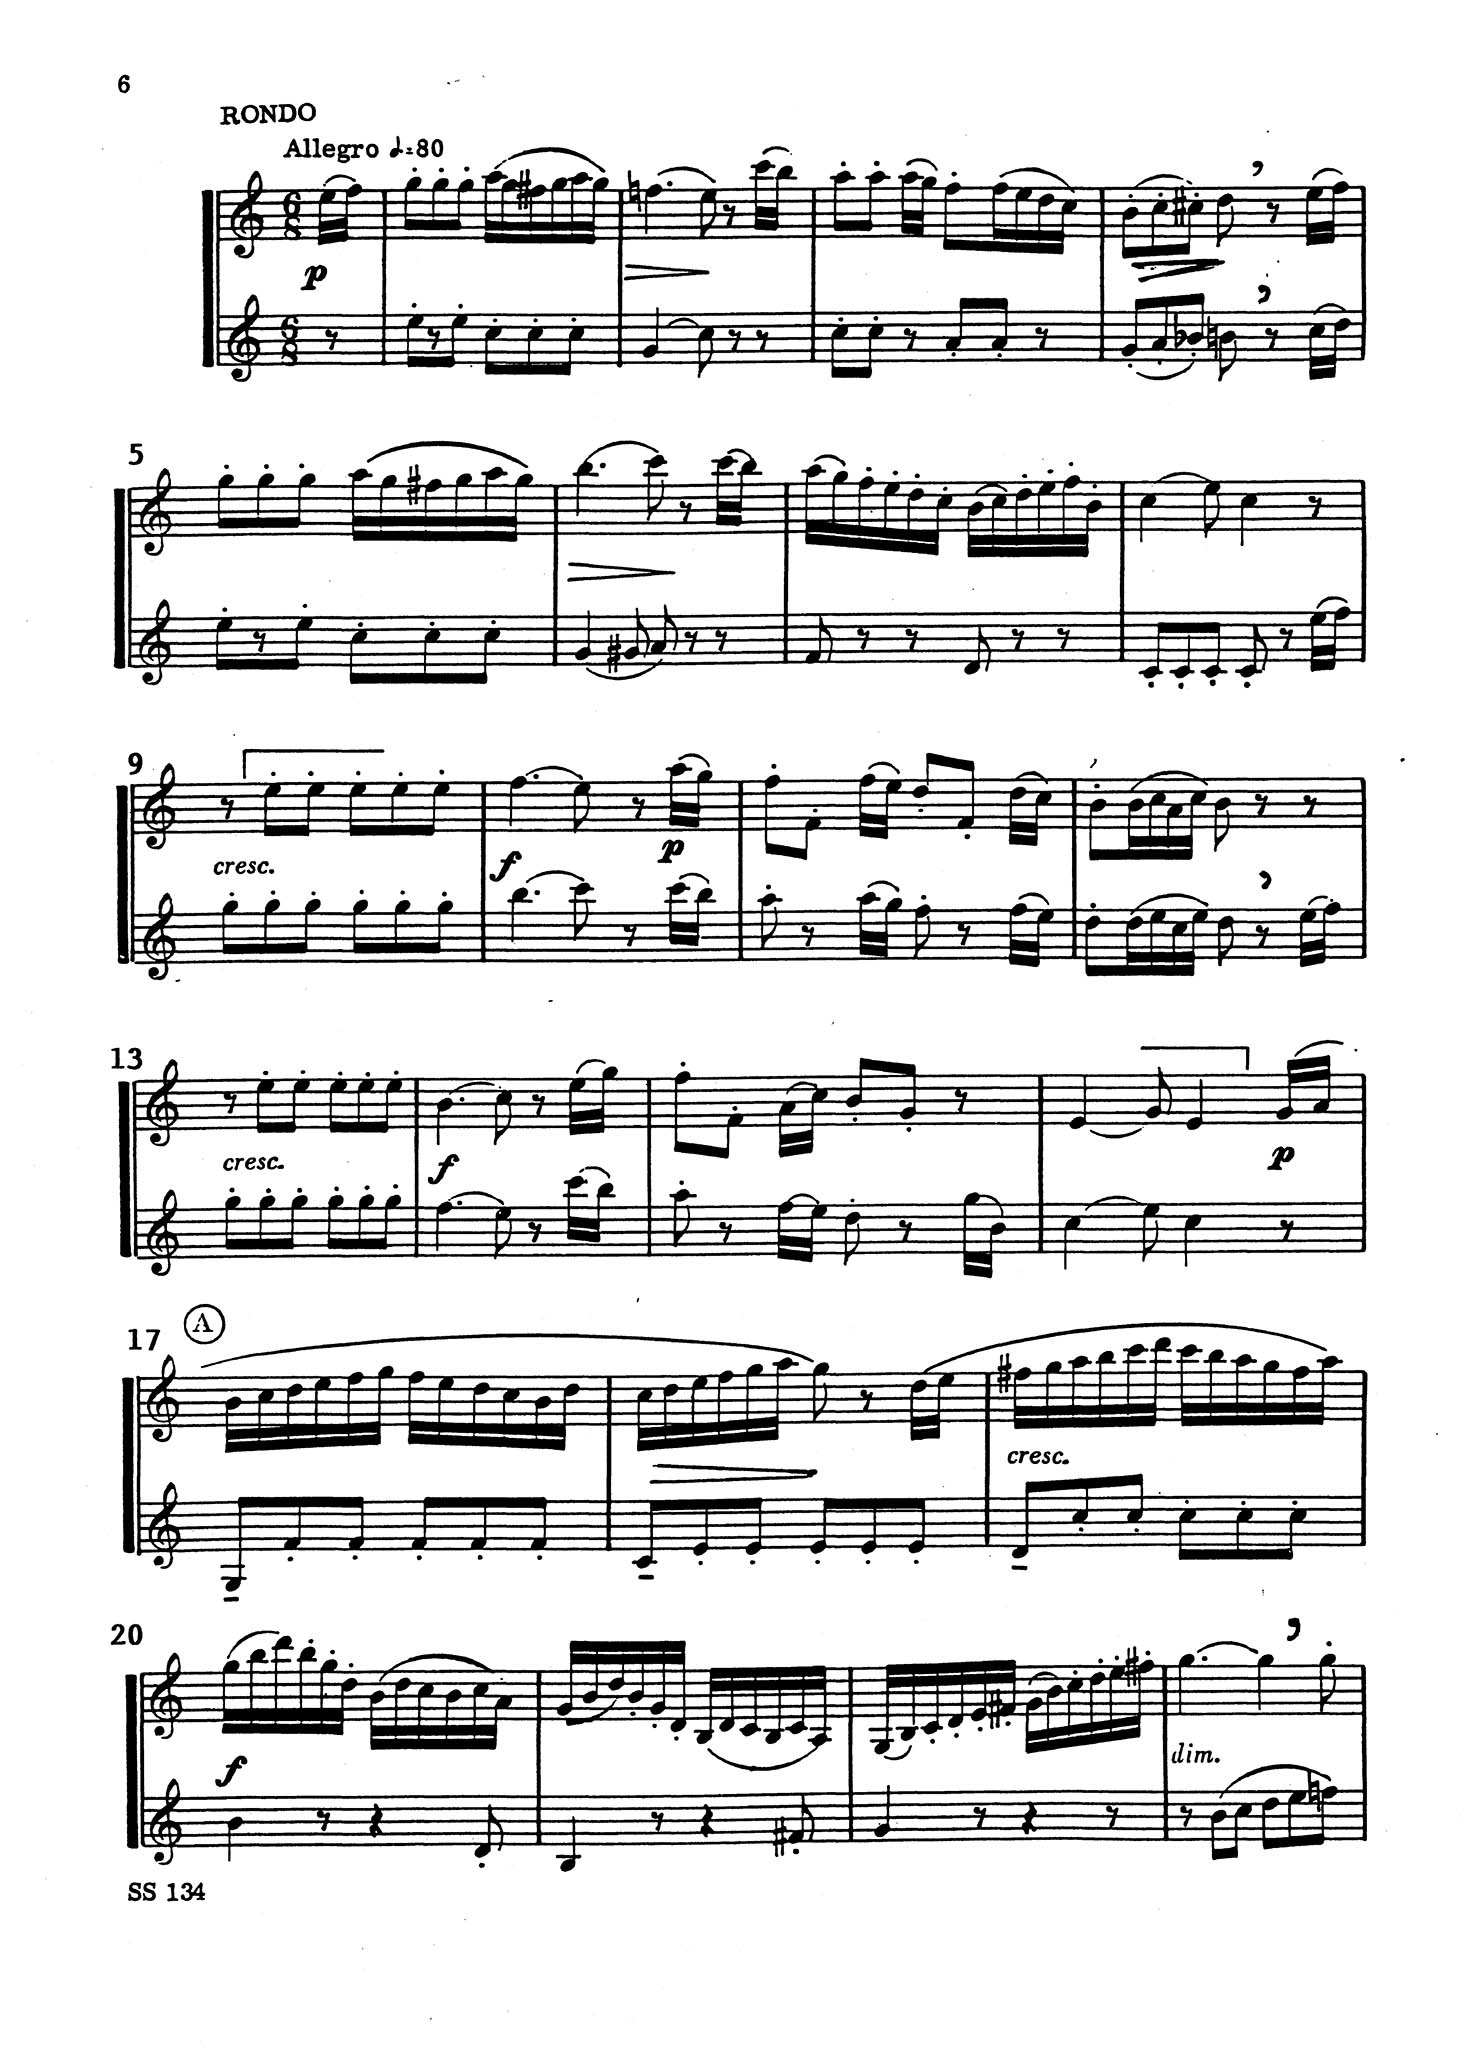 Clarinet Concerto in A Major, K. 622 for 2 Clarinets - Movement 3